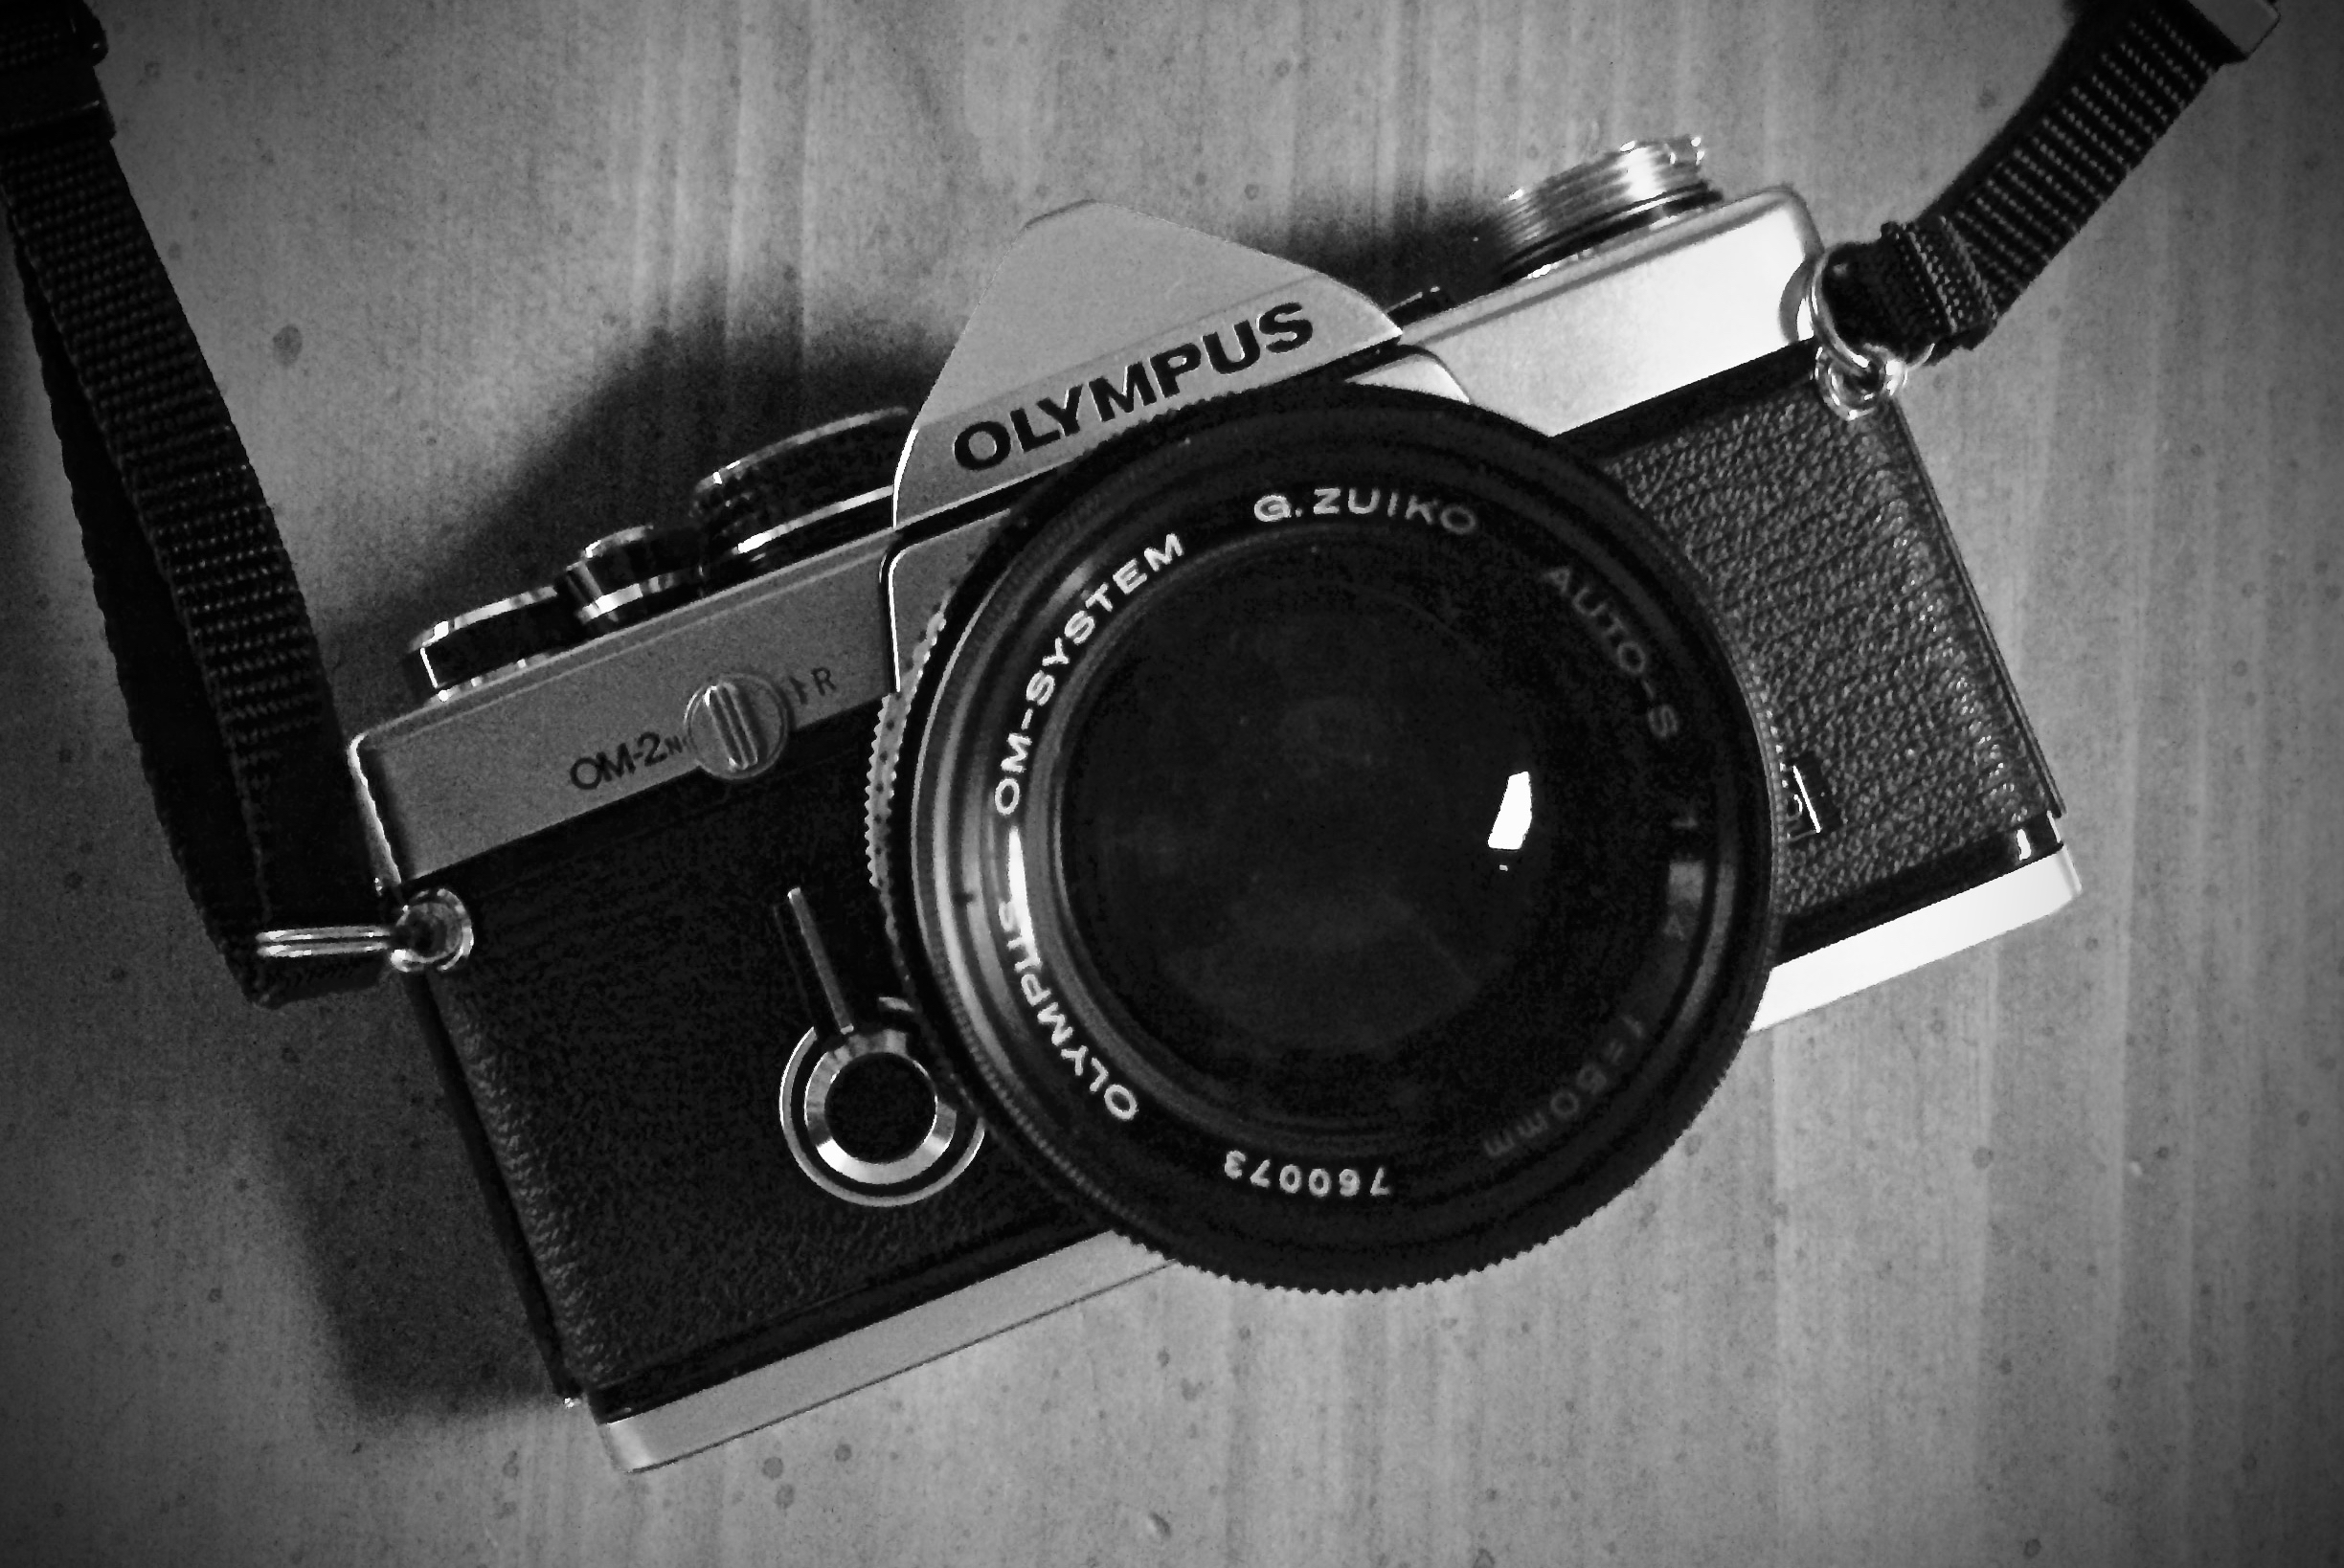 Classic 1970s SLR makes a great daily shooter in 2016